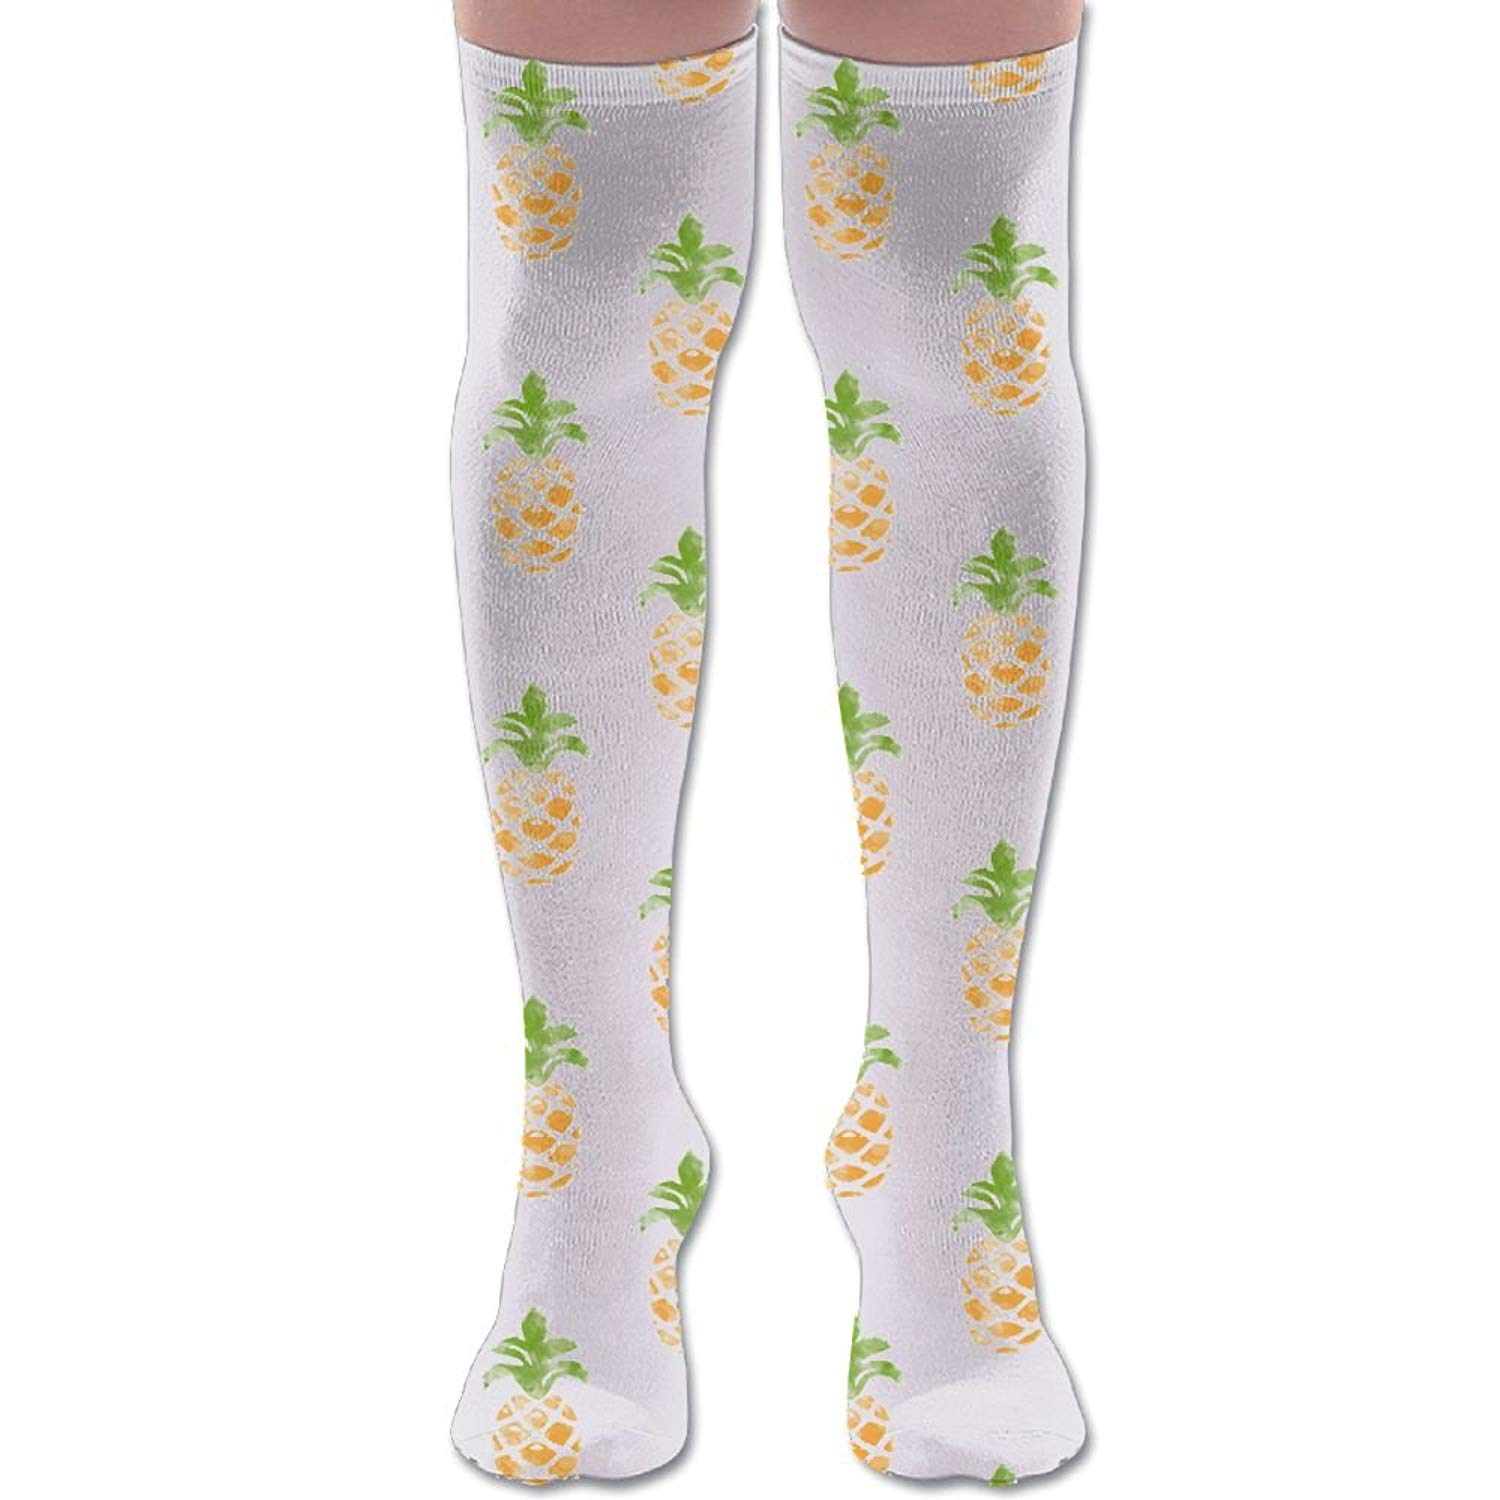 38785d4076d Get Quotations · Funny Pineapple Women s Sport Good Air Permeability Soft Knee  High Socks Funny